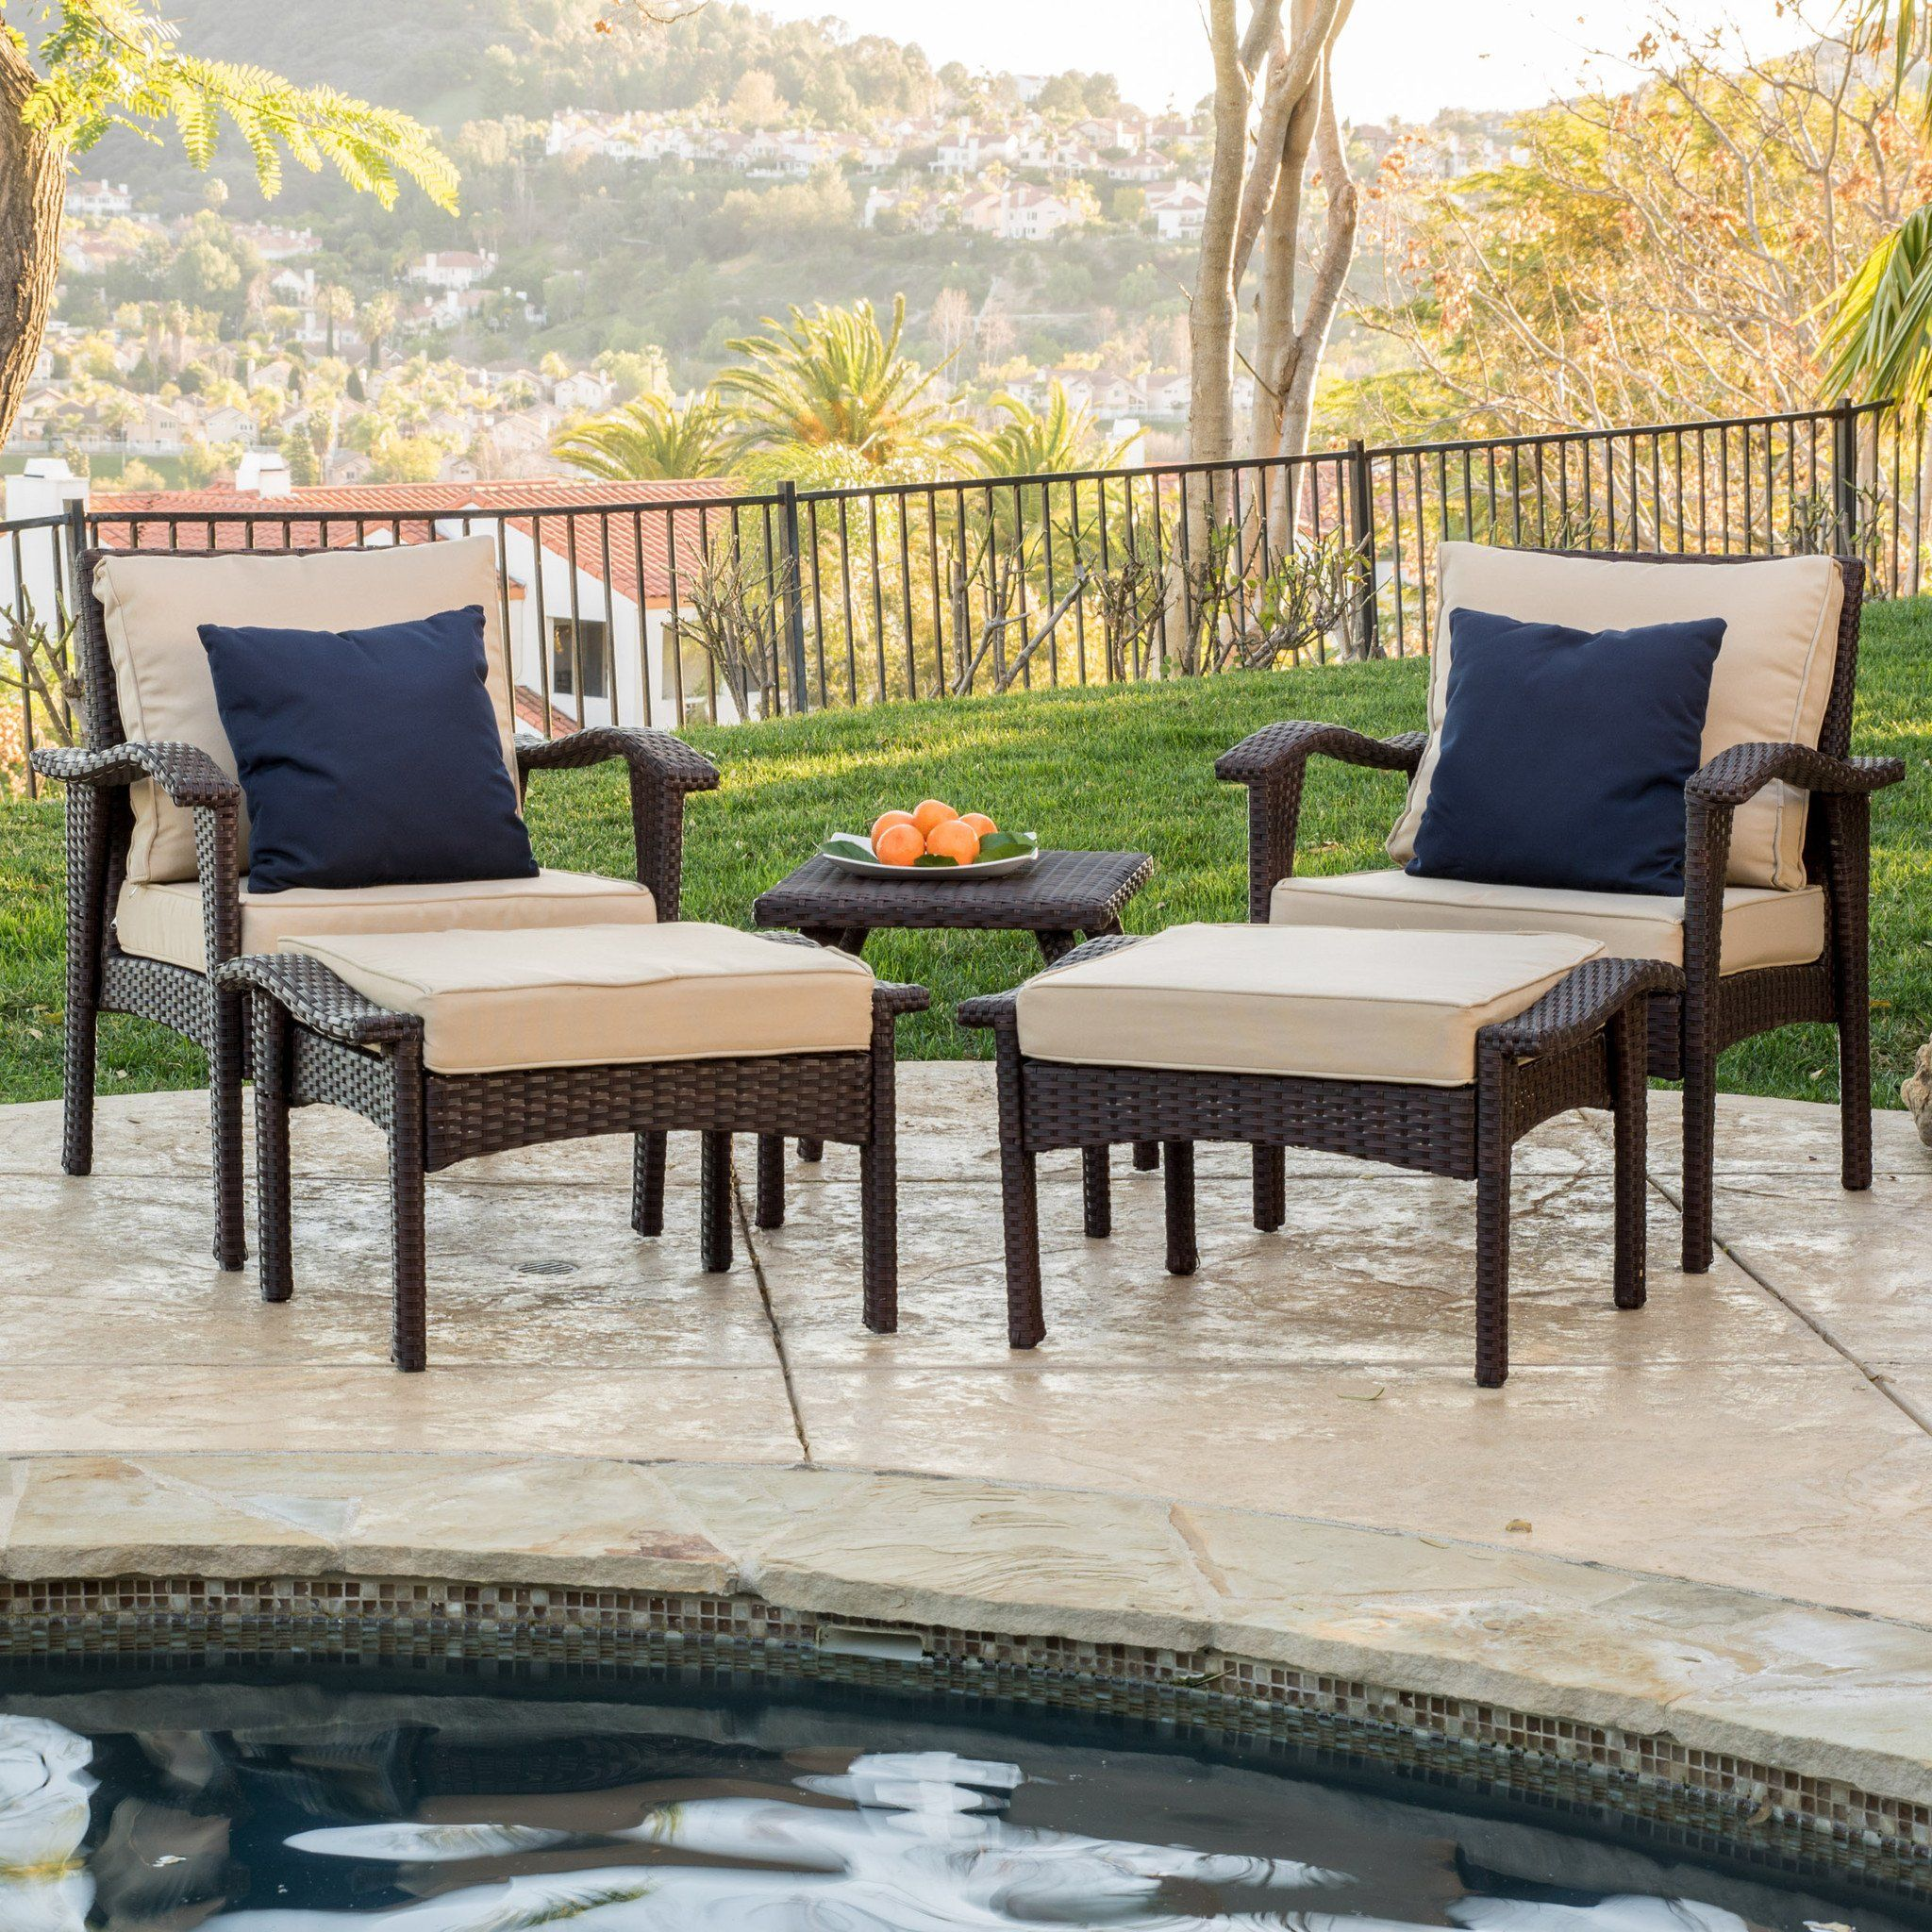 Wicker Seating Set With Cushions